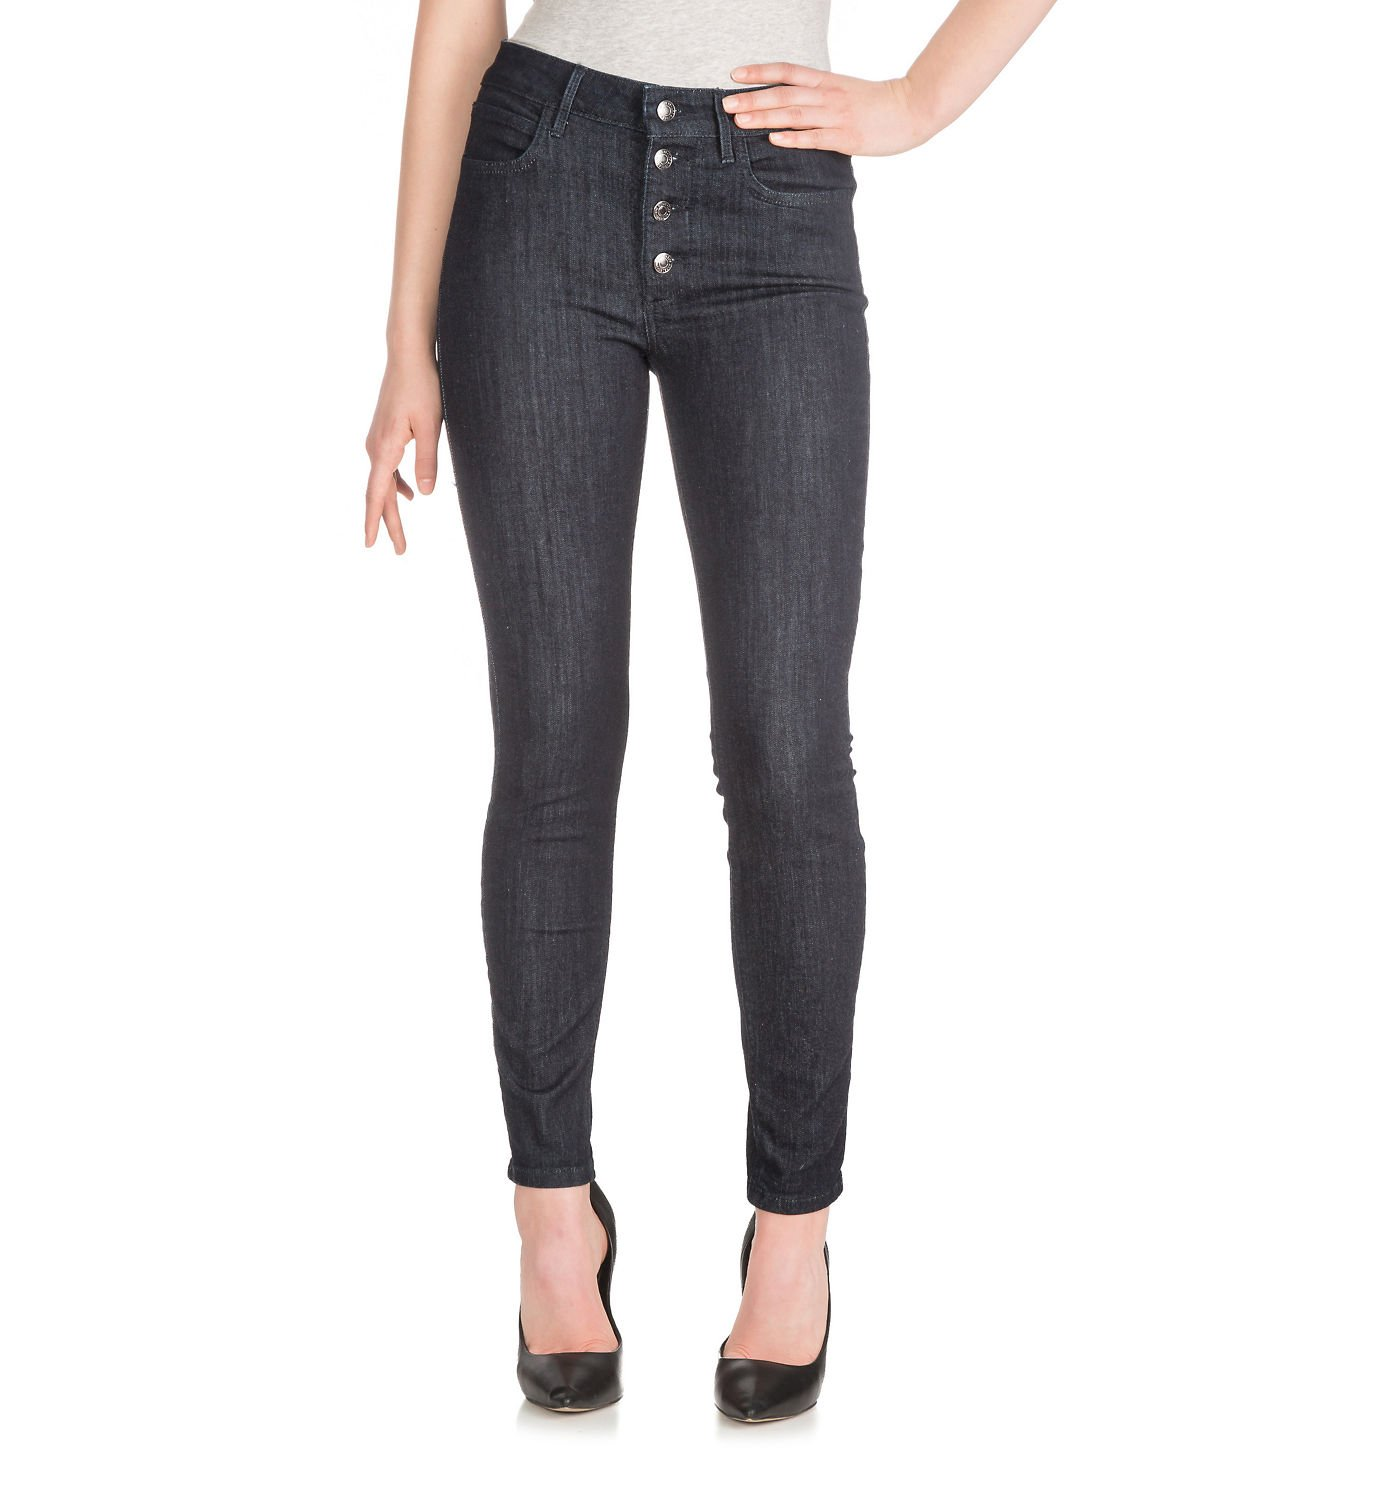 Guess Women's 1981 Button-Front Rinse Wash Skinny Jeans (Rinse, 30) by GUESS